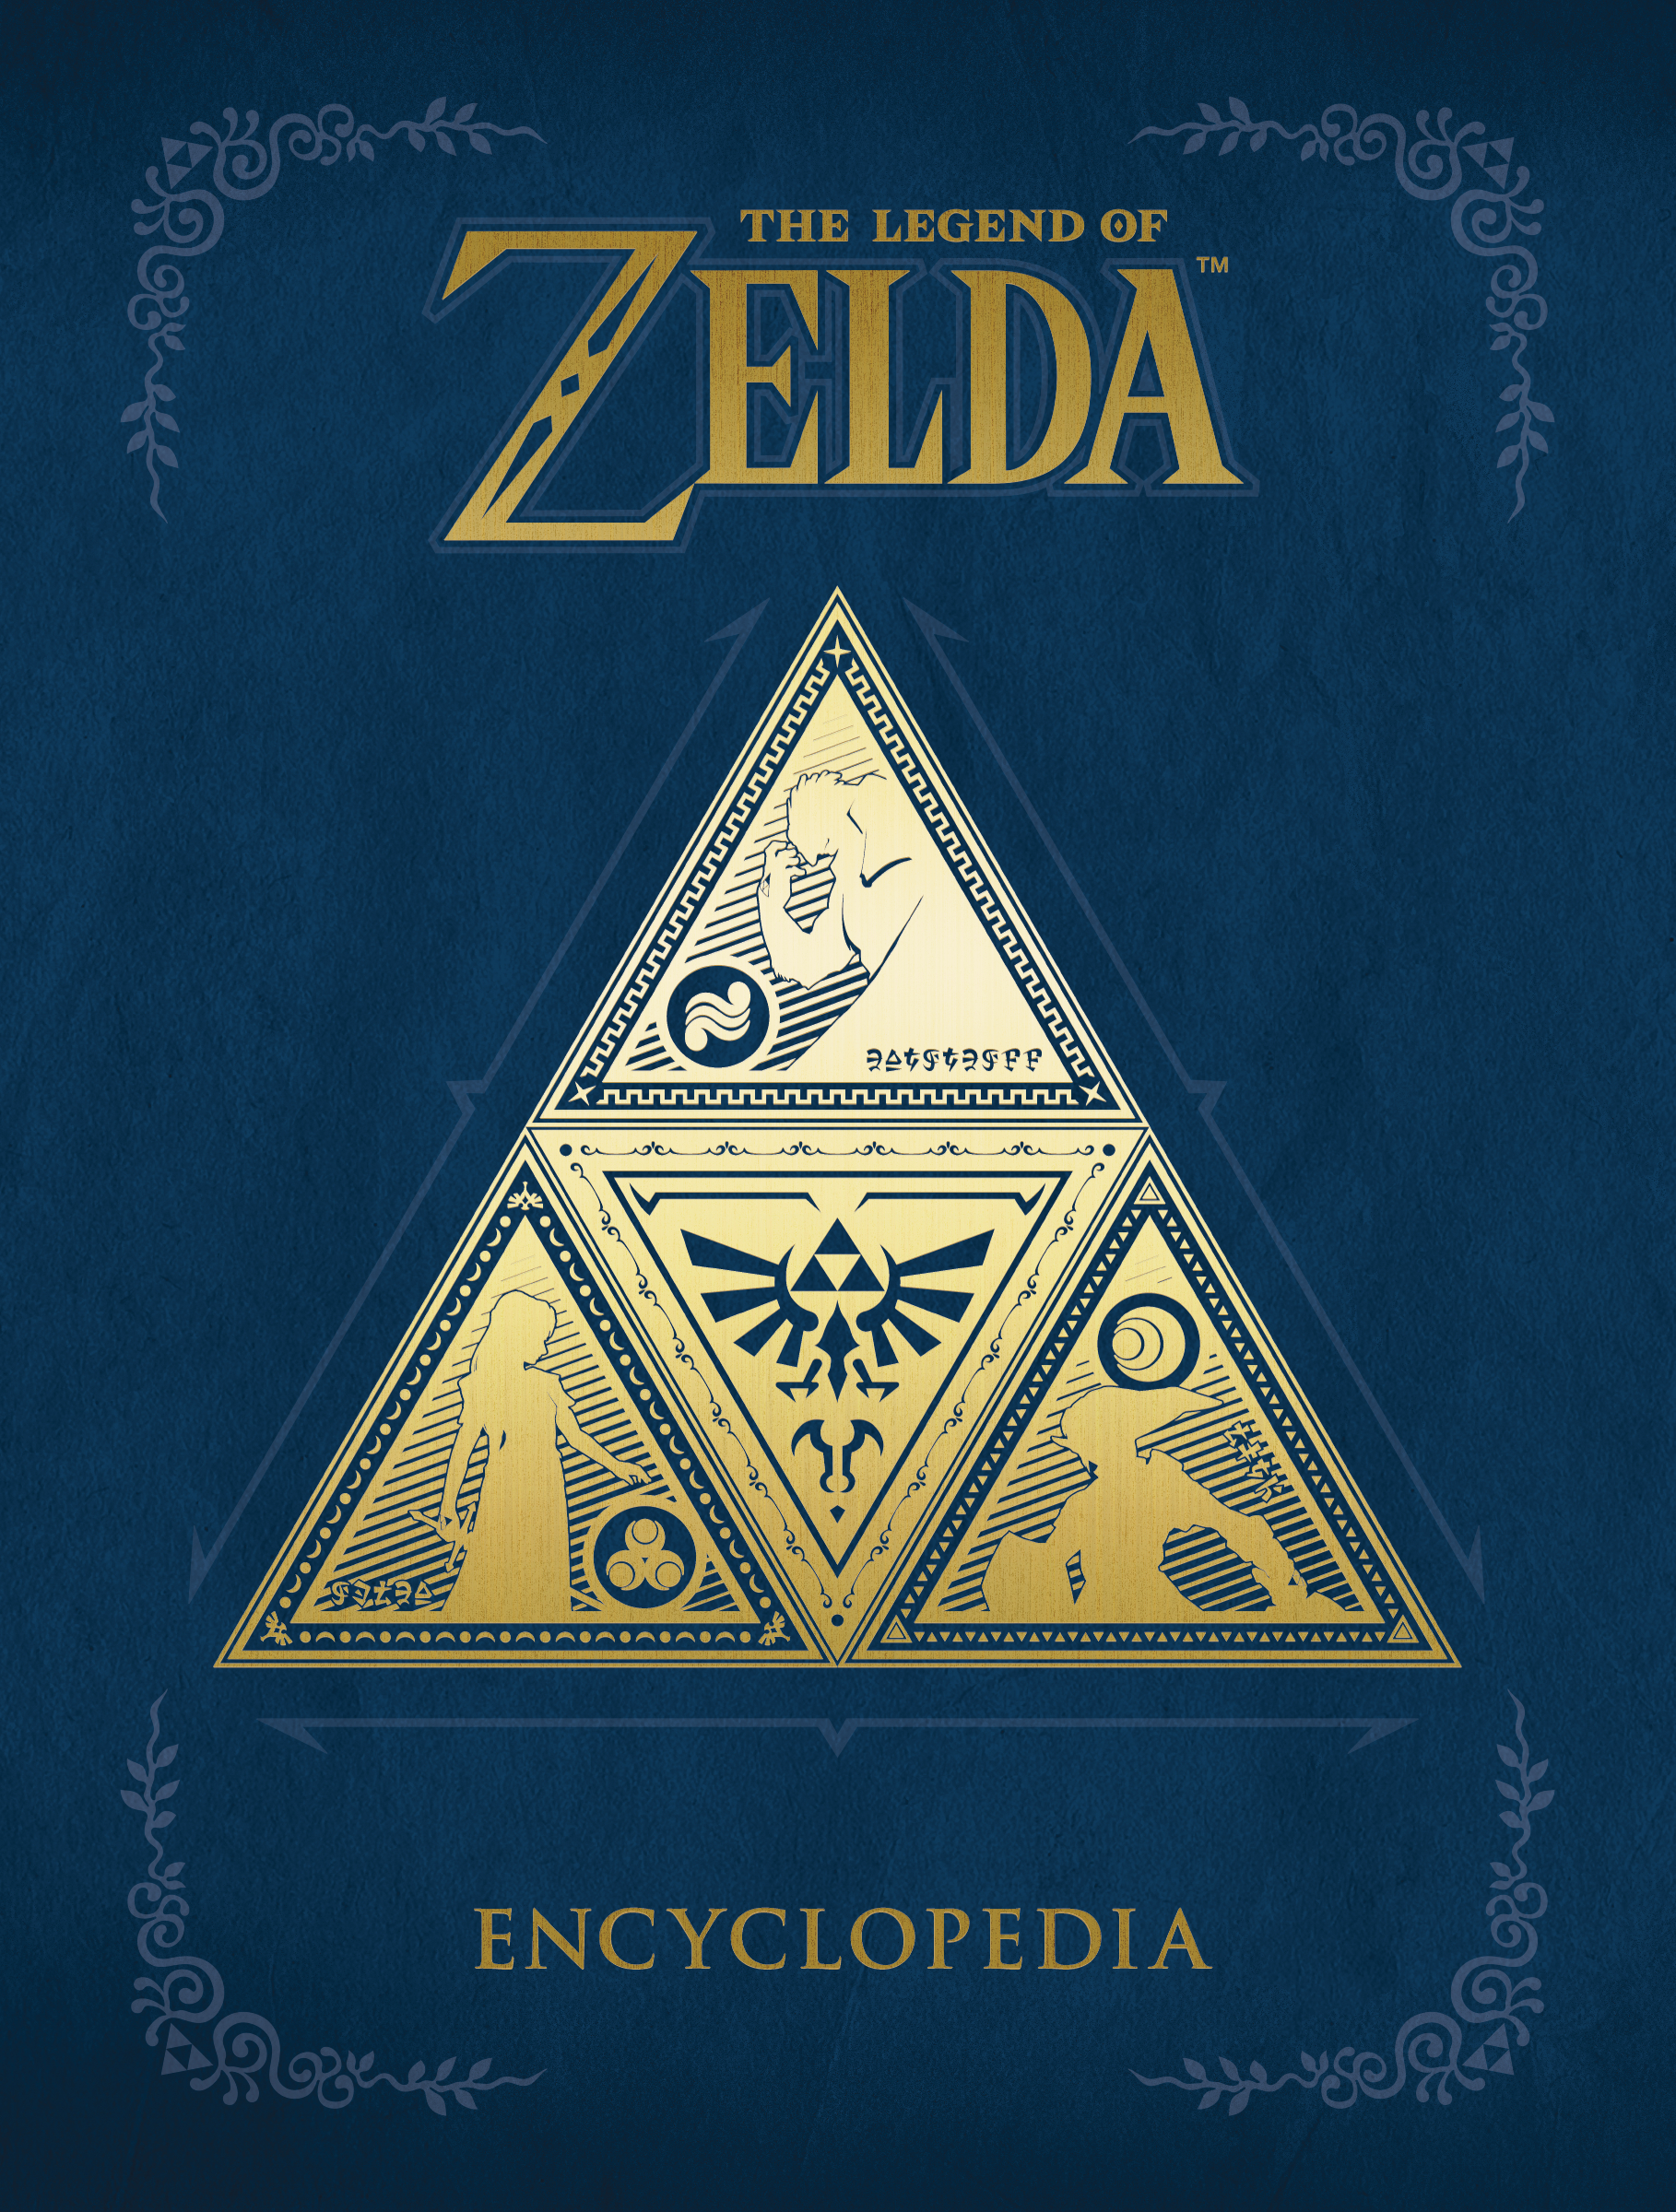 LEGEND OF ZELDA ENCYCLOPEDIA HC (DEC170068)